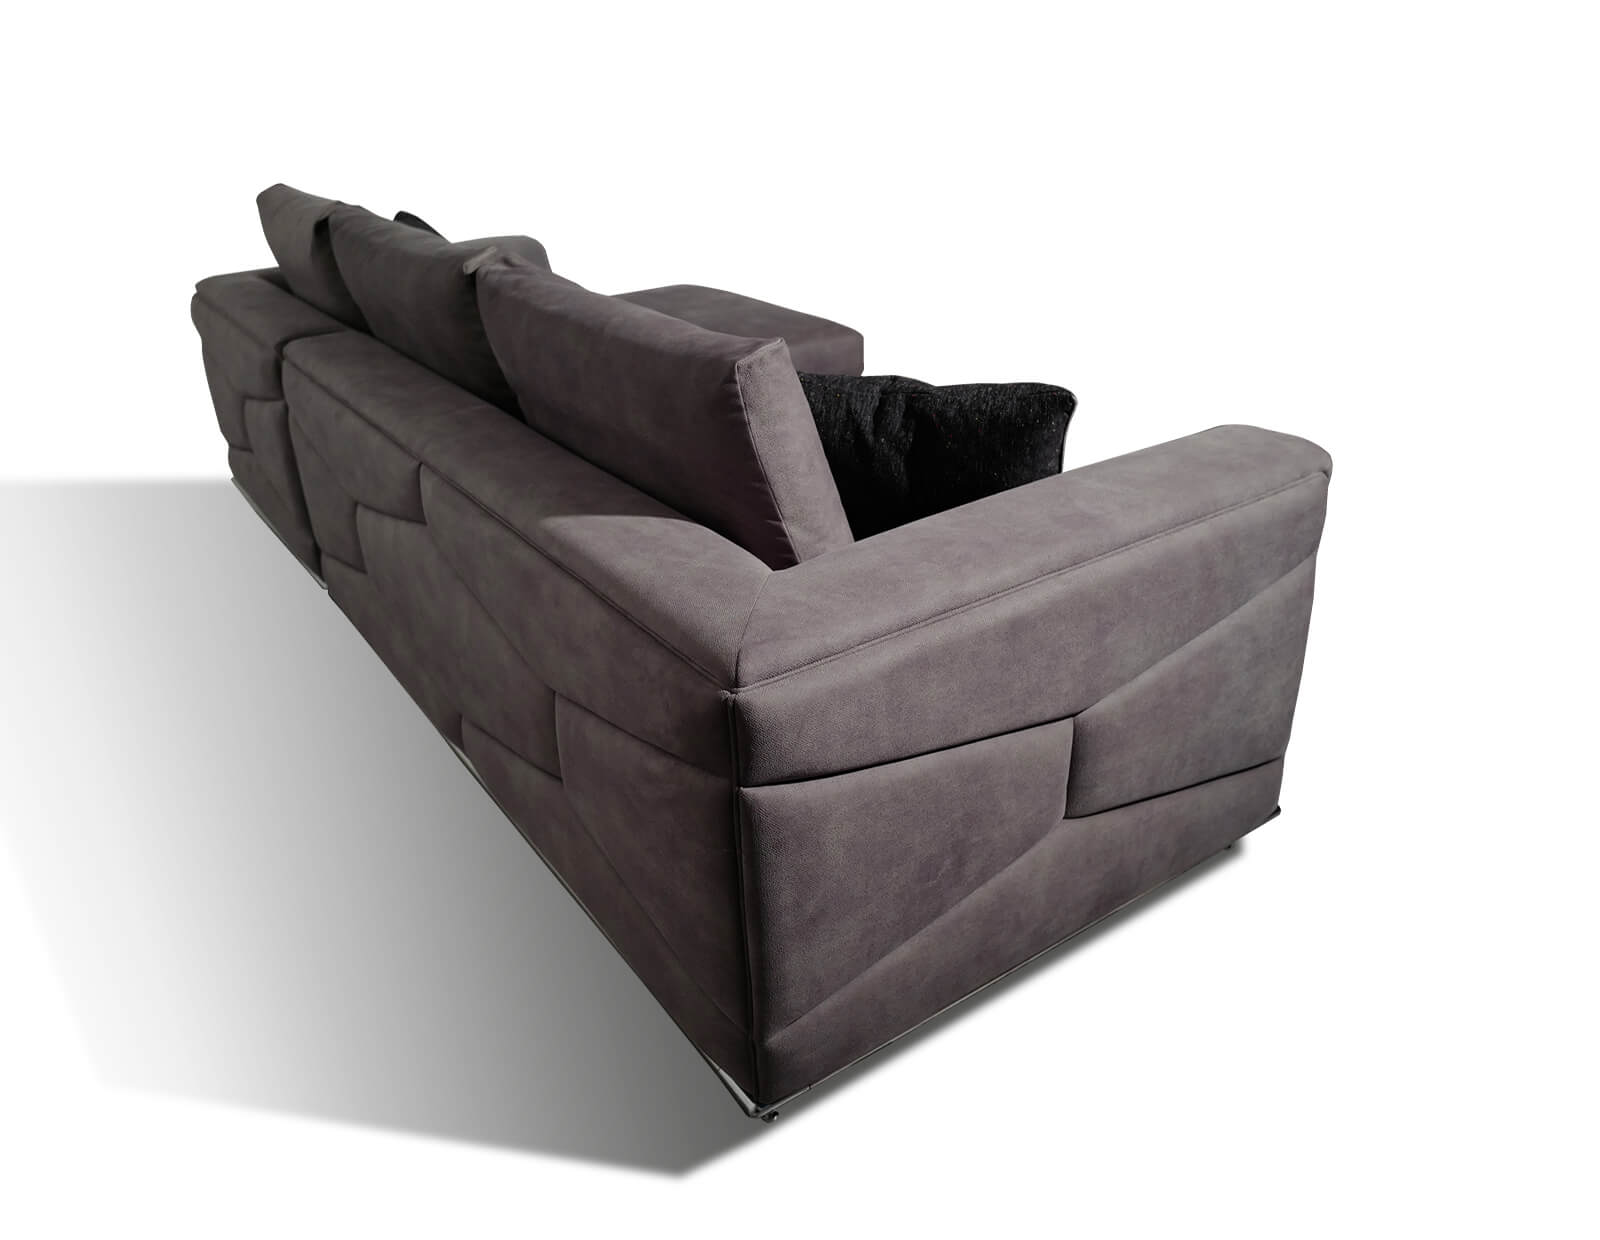 Corner Sofa Good Quality Best Sell Good Quality China Supplier Luxury Big Sectional